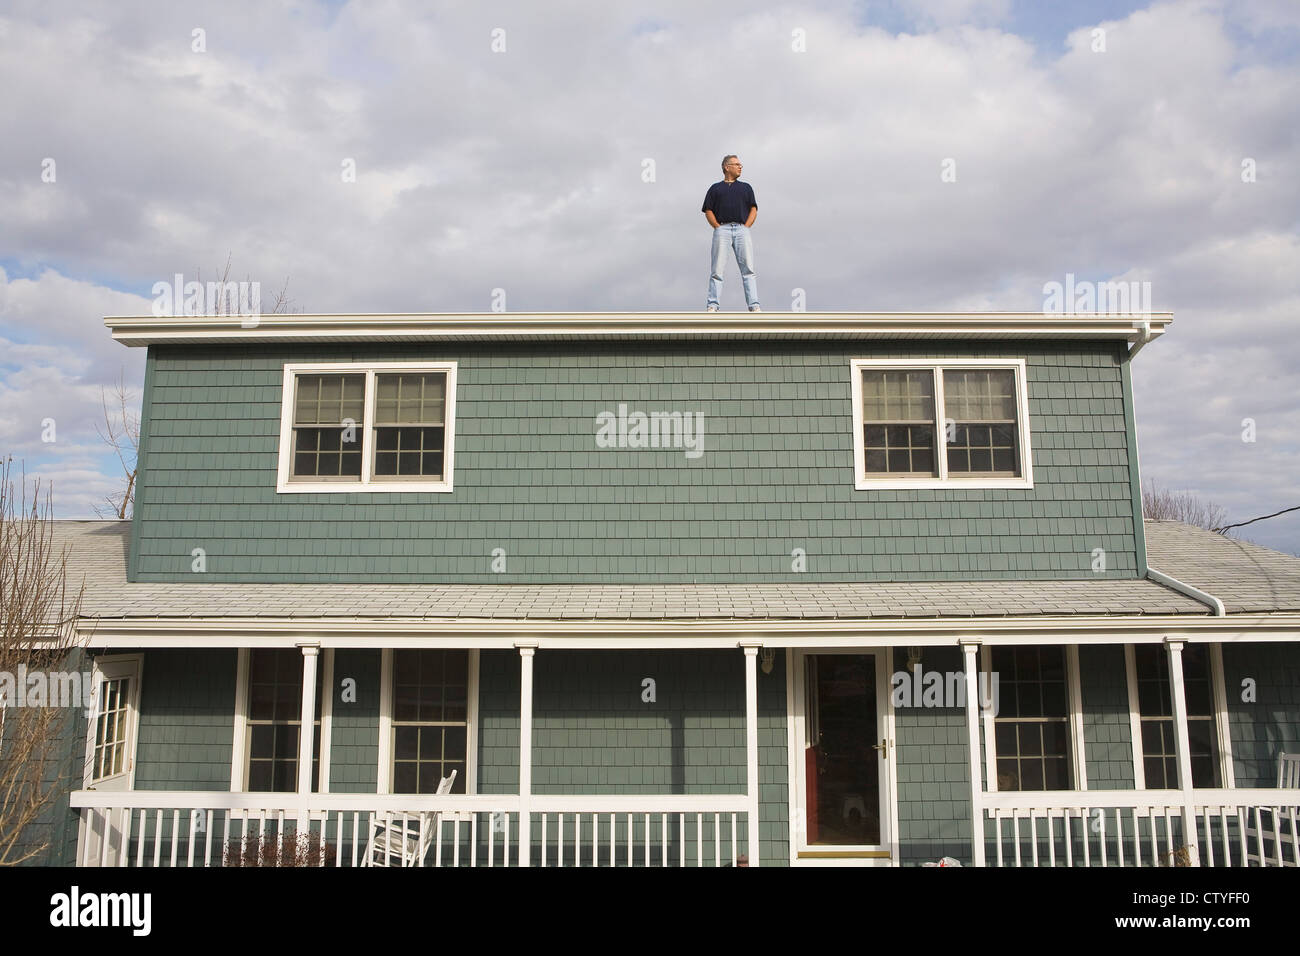 Man on Roof of Home - Stock Image